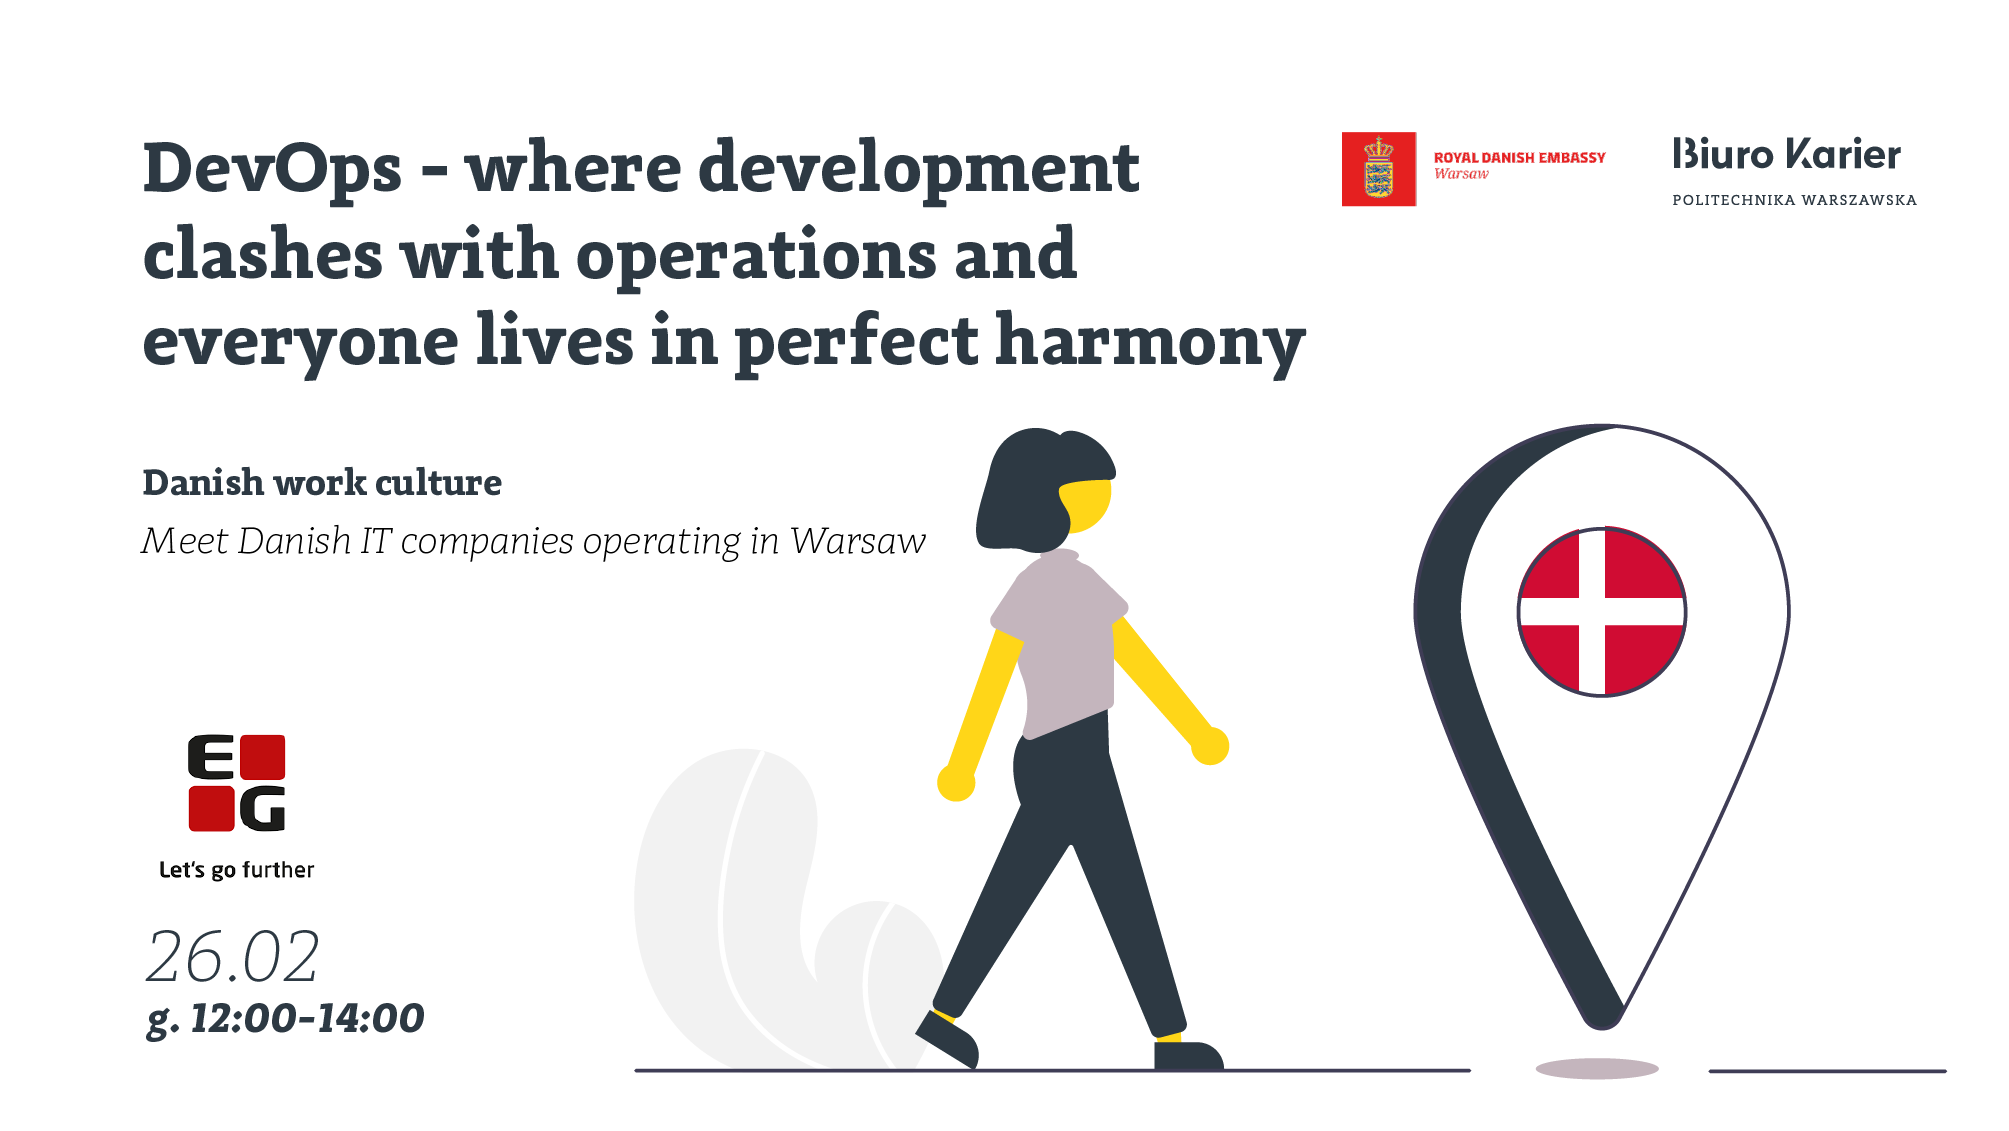 DevOps - where development clashes with operations and everyone lives in perfect harmony